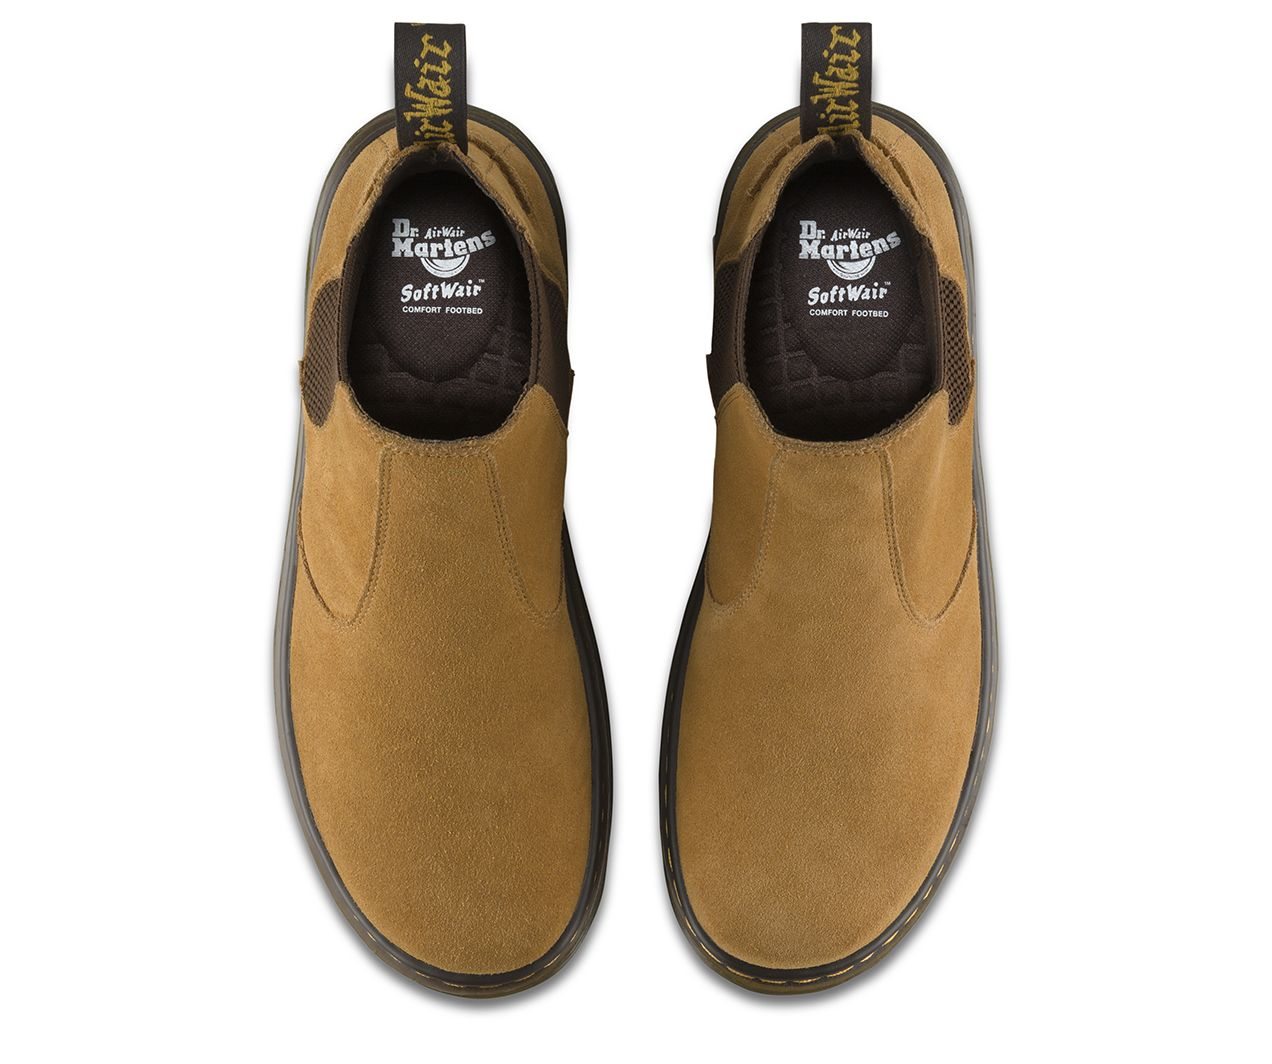 The Lyme Chelsea boot is made with soft Bronx suede and features a traditional silhouette, with elastic gussets for easy rebel fashion. It also includes all the classic Doc's DNA, like grooved sides, yellow stitching and heel loop, and our iconic air-cushioned sole.